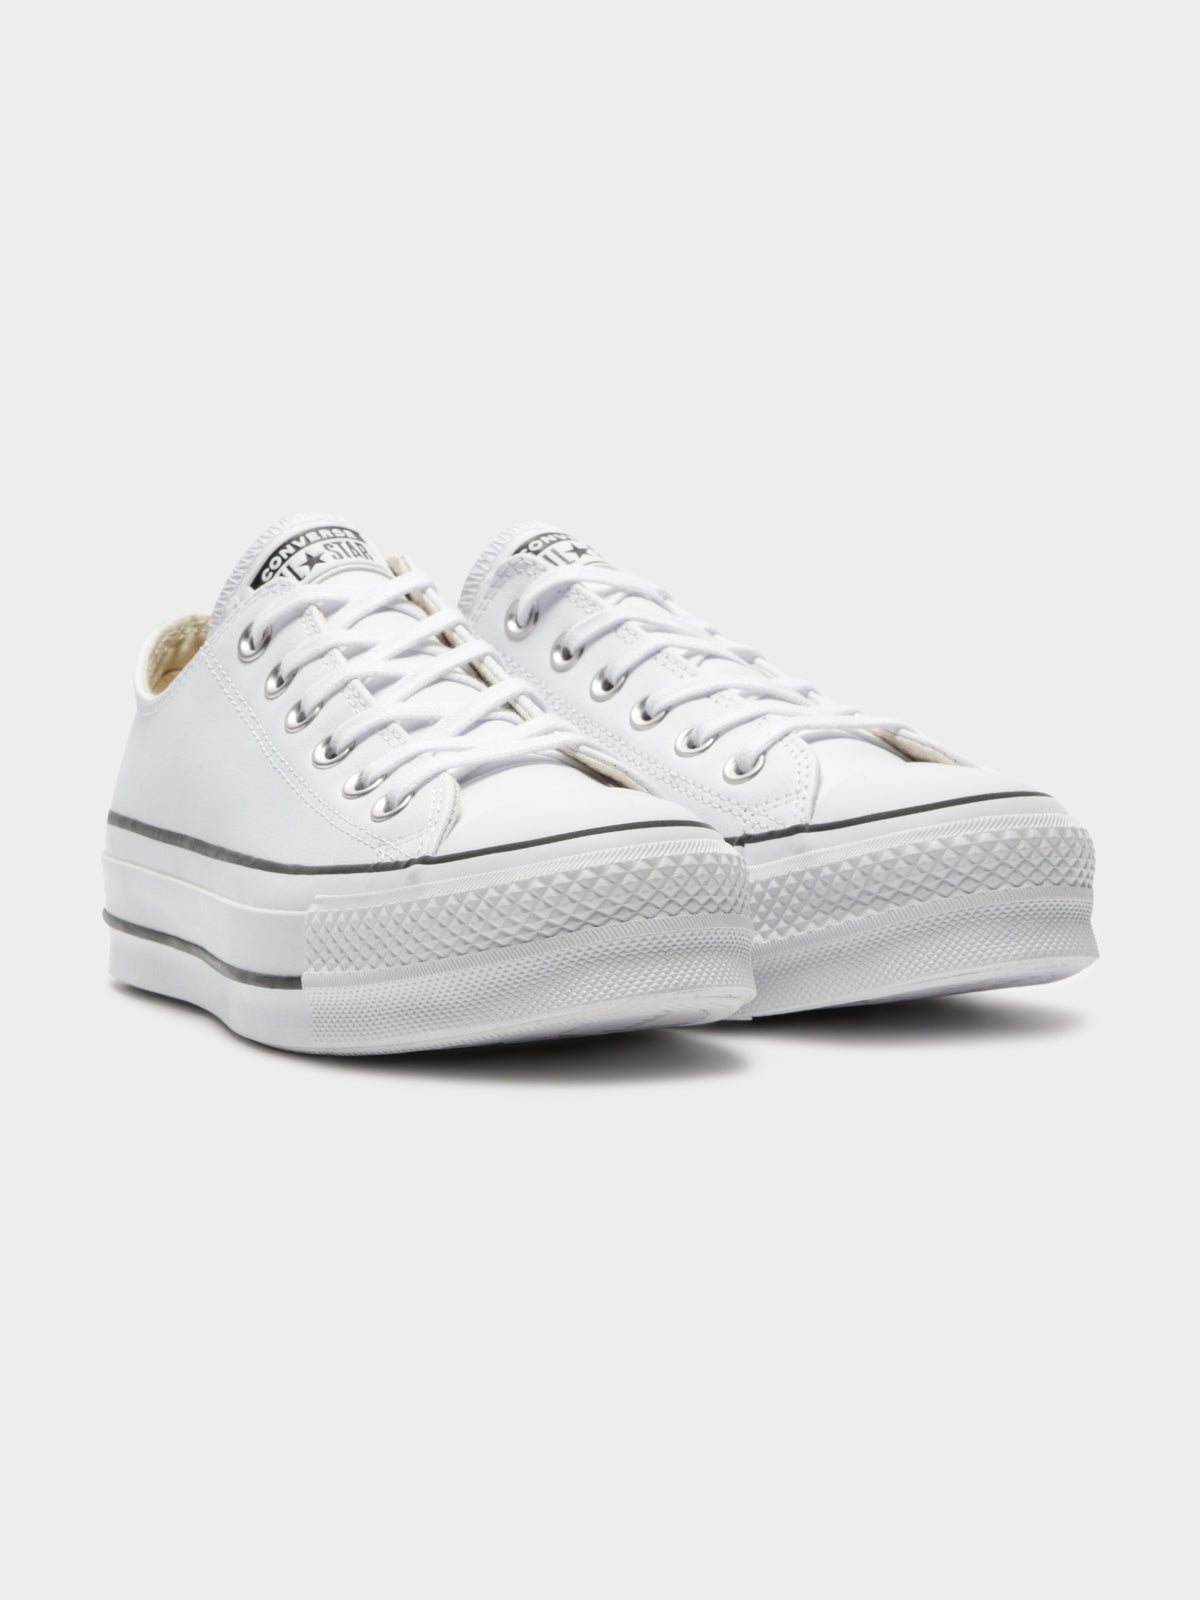 Womens Chuck Taylor All Star Leather Platform Sneakers in White & Black